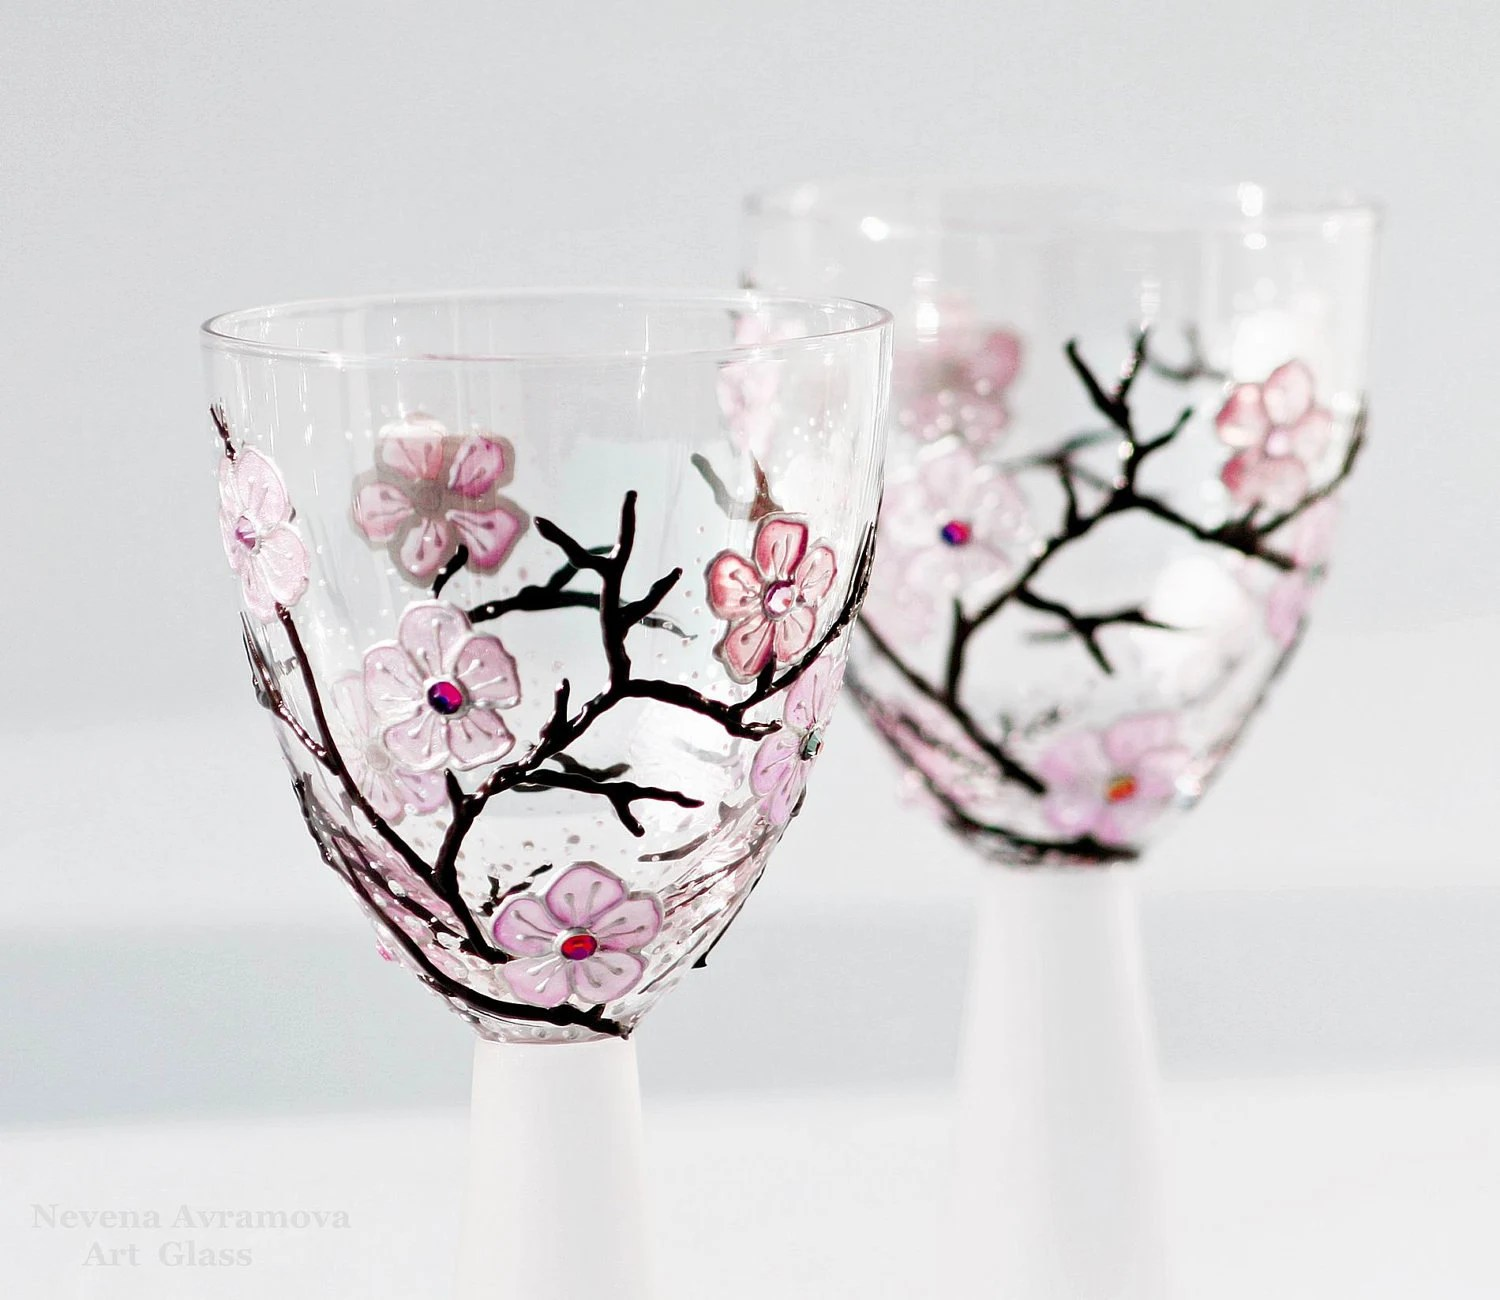 Wine Glasses or Candle Holders Hand Painted Sakura-kiss of spring Pink Violet  Light Rose Pink Swarovski Cristals Set of 2 - NevenaArtGlass